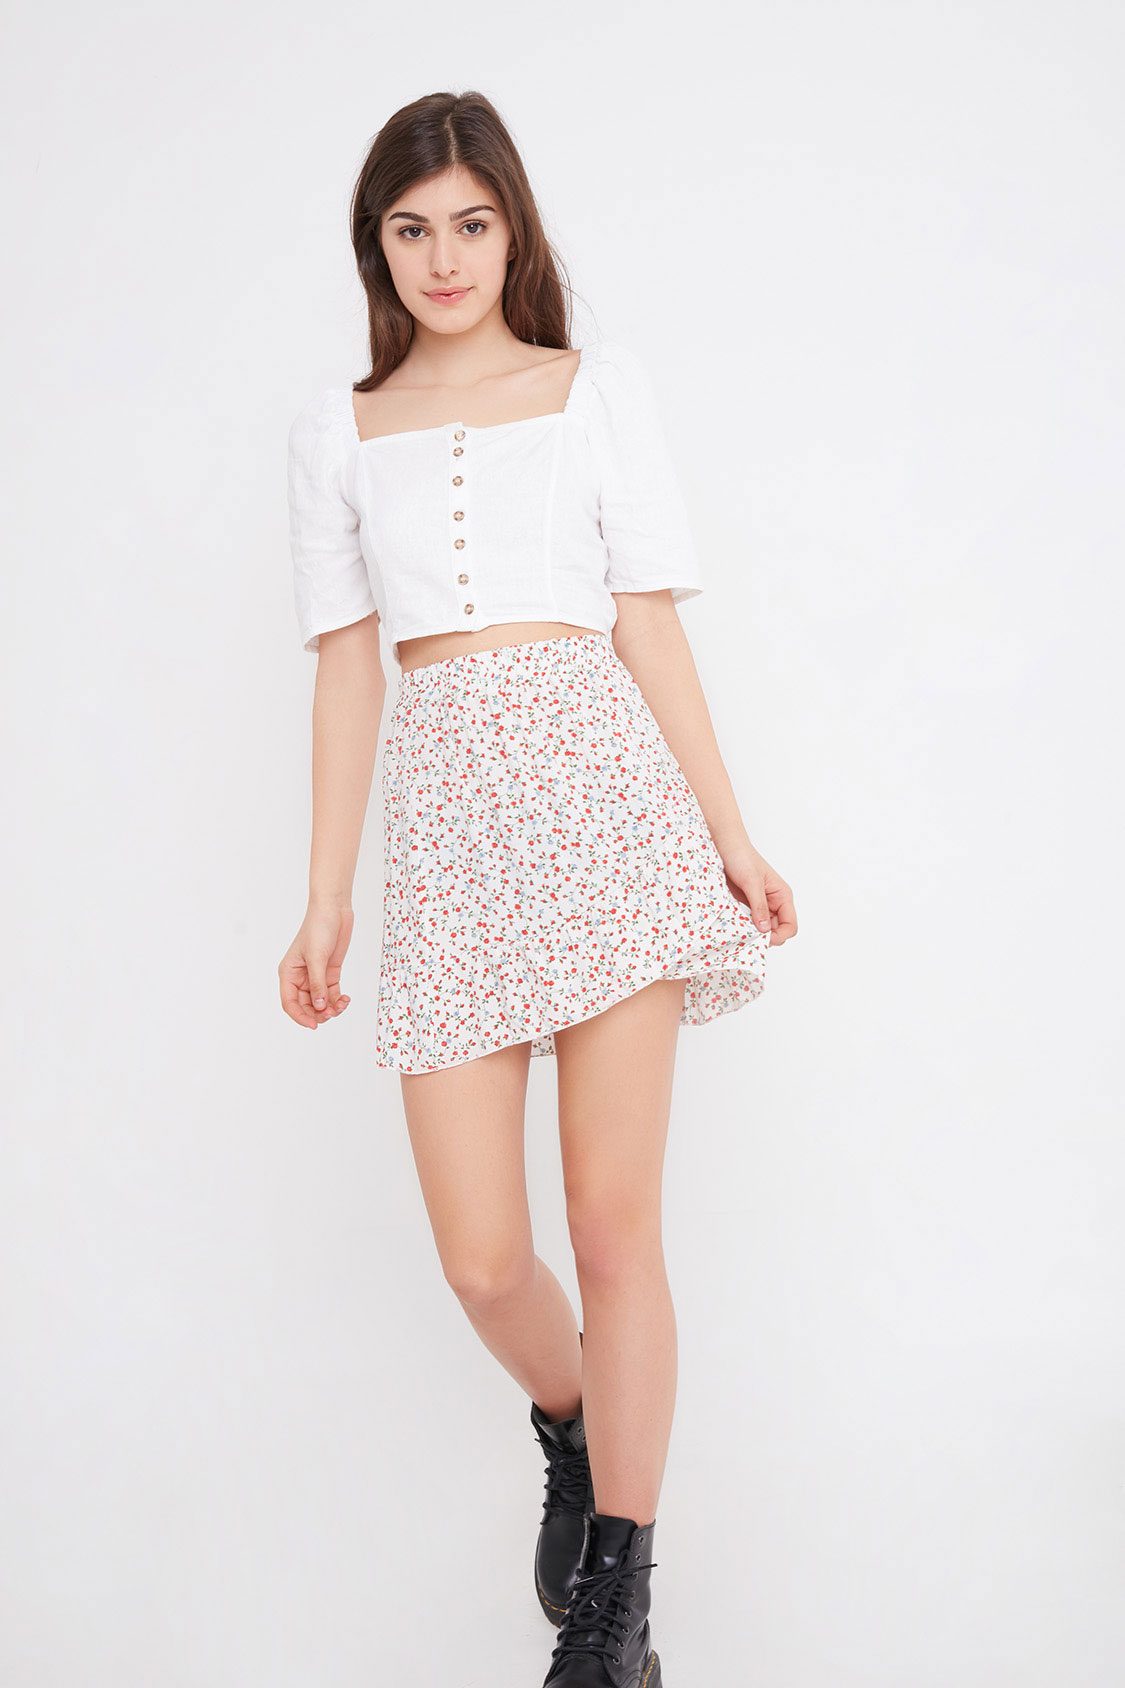 Buttons top